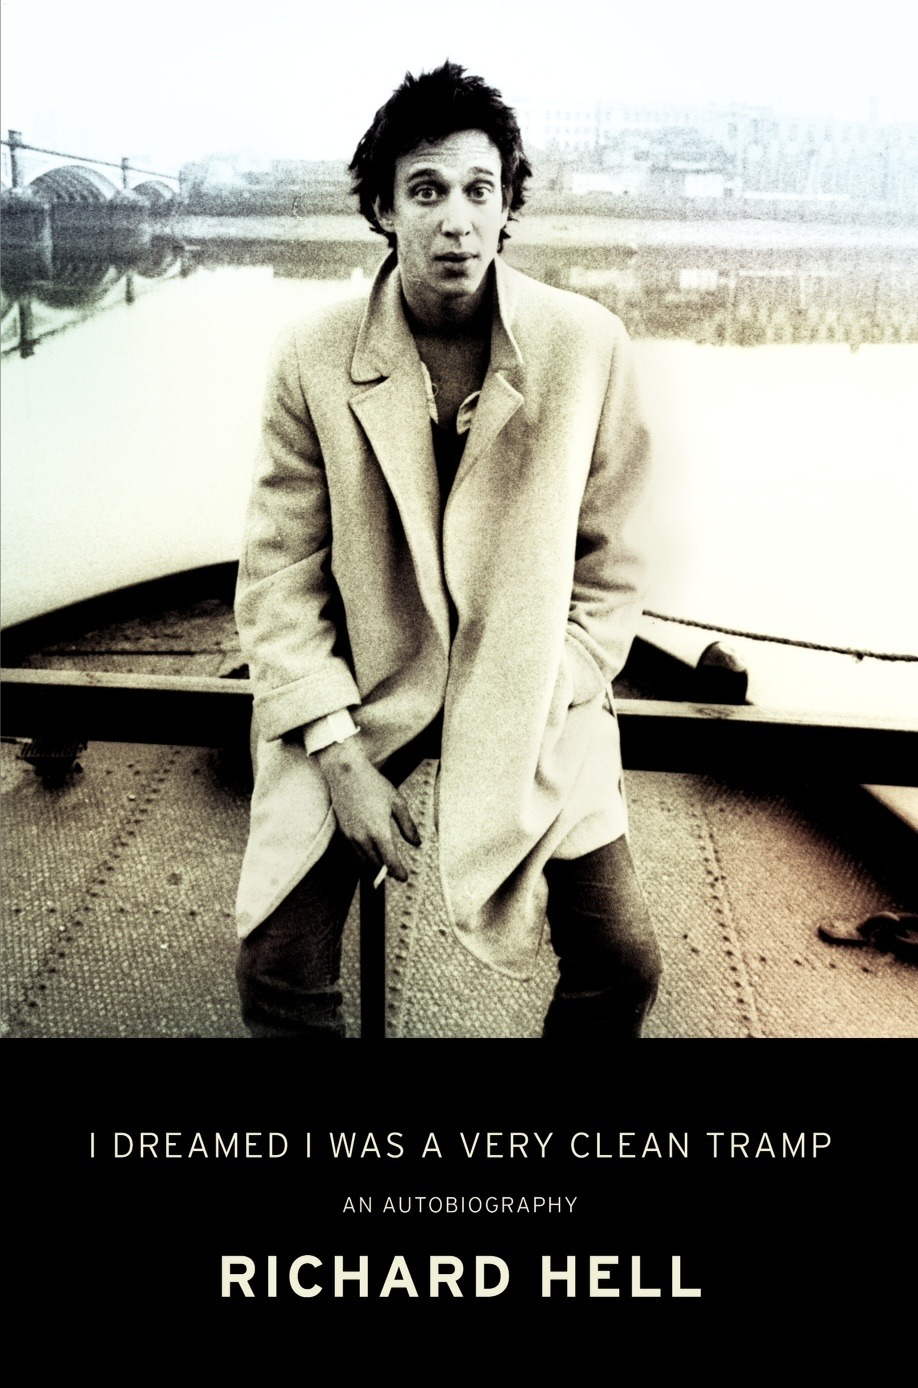 "The Richard Hell Interview Richard Hell—legendary punk rock iconoclast, intrepid novelist, poet, and now memoirist—is lounging on his couch in the cozy East Village pad he's called home since 19 fucking 75. Considering how brutally forthcoming Richard is about his drug use in his new autobiography I Dreamed I Was a Very Clean Tramp (""Thirty years later, I still have the scars on my left forearm""), it's a surprise that he looks significanty younger than his 63 years. His litany of feats since he escaped to New York are a total mind-blow. In Tramp, Hell vividly recounts his gun-toting cowboy dreams as a young miscreant and his rabble-rousing school-dropout years before hitting New York City and altering its landscape. He helped create the punk template with a fuck you attitude, birthed anarchic style with tattered, thrift-store threads, botched hairstyles that Malcolm McLaren later swiped for the Sex Pistols, started Television with Tom Verlaine, put CBGB and Max's Kansas City on the punk rock map, wrote era-defining tunes like ""Blank Generation"" with his band the Voidoids, survived life as a junkie, and penned Burroughs-level dirty sex 'n' track-marked novels and poetry. Hell's I Dreamed I Was a Very Clean Tramp is epic badassness. He hides little about his life's trajectory and his disdain for Verlaine and Richard Lloyd, his undying love for Dee Dee Ramone and Bob Quine, the drugs, the music, and the debauchery. Just don't ask him about being Jewish and what he thought of Marquee Moon. He'd much rather talk about his dick.   VICE: When did you start writing I Dreamed I Was a Very Clean Tramp?Richard Hell: Right after my last novel (Godlike) came out in 2006. It's been a long haul. But I did a bunch of things—other projects—as I was doing it, too. Still, it was a slog. It's twice as long as anything I've written before. And also more confusing. It gets delicate to write about yourself [laughs]. I assume it's much easier to write fiction.Yeah, yeah. It's easier to write fiction. You're right. But it was a long process figuring out what to keep and what not to keep. Things are coming back to me that I forgot to mention [laughs]. Still, it hits you when you're working on a book like that, that it will be easy enough to spend 600 pages describing one day. But you kept journals over the years. Did those help in putting the book together?I did, yeah, but I was never really systematic about it. They were really useful. But it's not as if I could wonder what I was doing some month from looking at my journals. I'd go three months without writing anything in there and then just open it up and just write a page. But they were helpful. They did nail down dates and did also just show me exactly what was going on in my head. When you started writing Tramp, was the book already bought?Oh, I never do that. I'll write the book, then I'll go look for a publisher. So, there weren't any publishers on your ass to write an autobiography?  Are you kidding me? Noooo! In fact, I was turned down by probably about six or seven publishers. There were basically two offers. The book was in sloppier shape then. I did send it out because I was so tired of working on it. I really OD'd on it. I was nauseated and I just wanted to find a publisher—just to get a little charge goin', ya know? [laughs]. But I got the ideal publisher for it, and it worked out great. No regrets, really. Did you plan on Tramp being your next project after you were done with Godlike?No, I had to figure that out. I thought writing Tramp was gonna be easy in comparison because I figured I had the… narrative… so that solves a lot of problems. Then I'd just try to figure out how to write good sentences. It sure turned out to be a lot more complicated. I kept getting turned around and all the fuckin' internal turmoil figuring how to regard my own self… I mean, that's really confusing. Did you feel like by writing the book, you were penning a de facto obituary?No, it's nothing like an obituary. An obituary is just a really flattering curriculum vitae. That wasn't the issue. When you were writing the book, were you cognizant about other musicians writing memoirs, like Patti Smith (Just Kids) and Keith Richards (Life)…I can't see this interview in VICE magazine.  Why? OK, I'll ask you some more provocative questions [laughs].Yeah, you're supposed to ask me about my dick or something. Yeah, you're right. Who'd you bang? Continue"